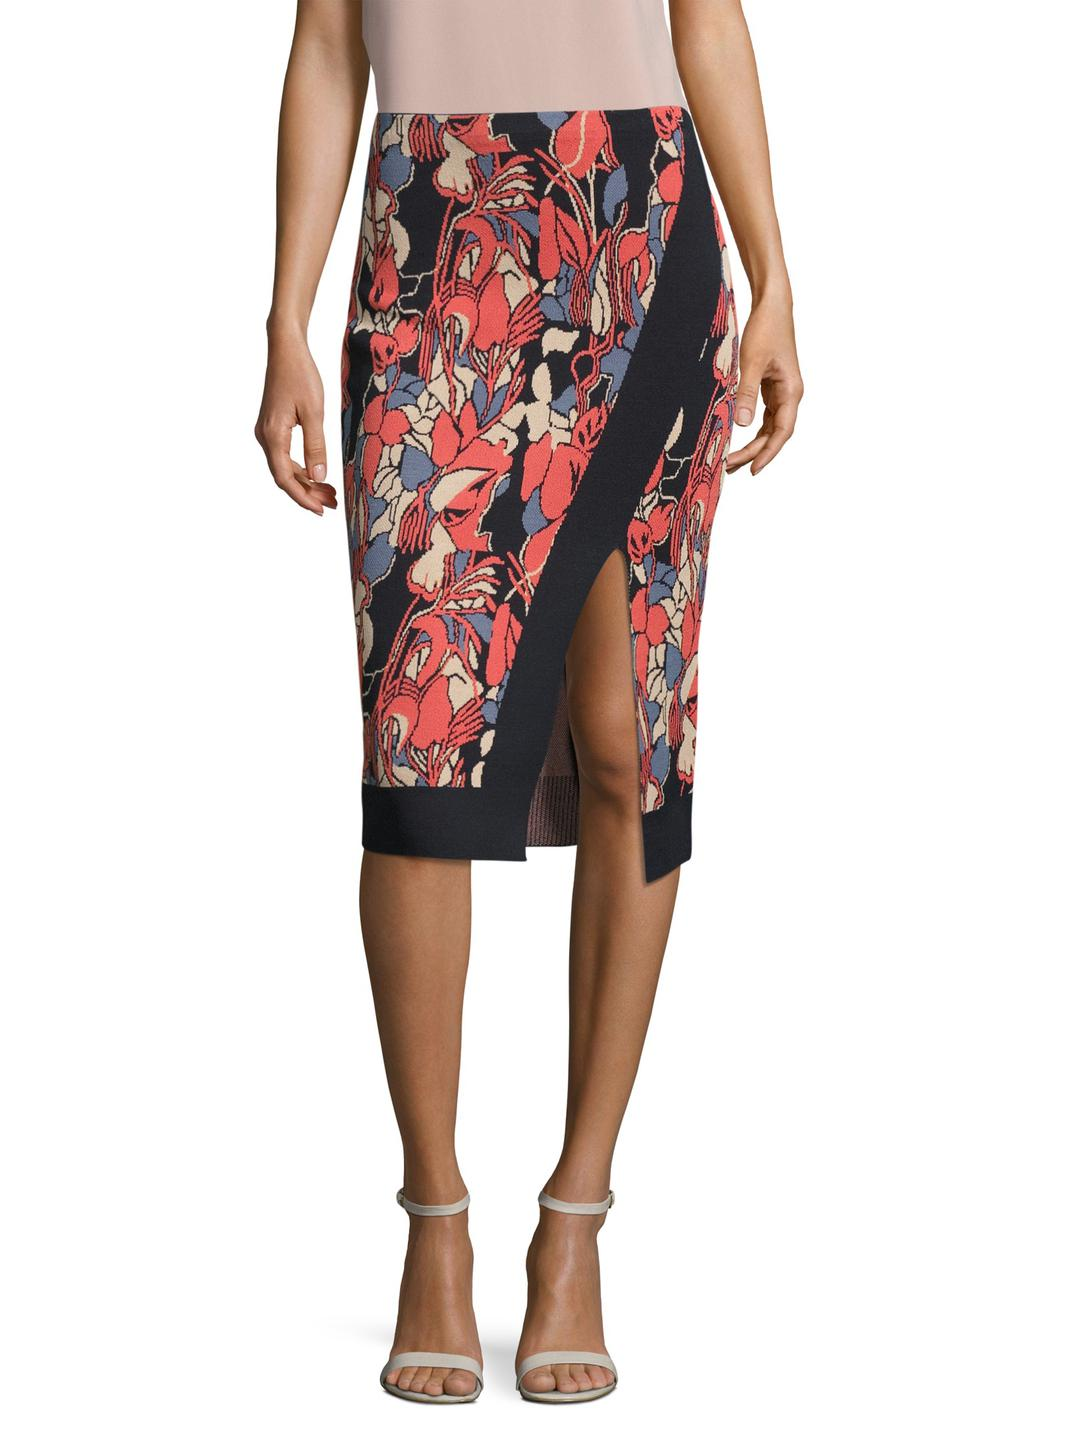 4d82a9a353f Lyst - RACHEL Rachel Roy Crossover Floral Intarsia Pencil Skirt in Red